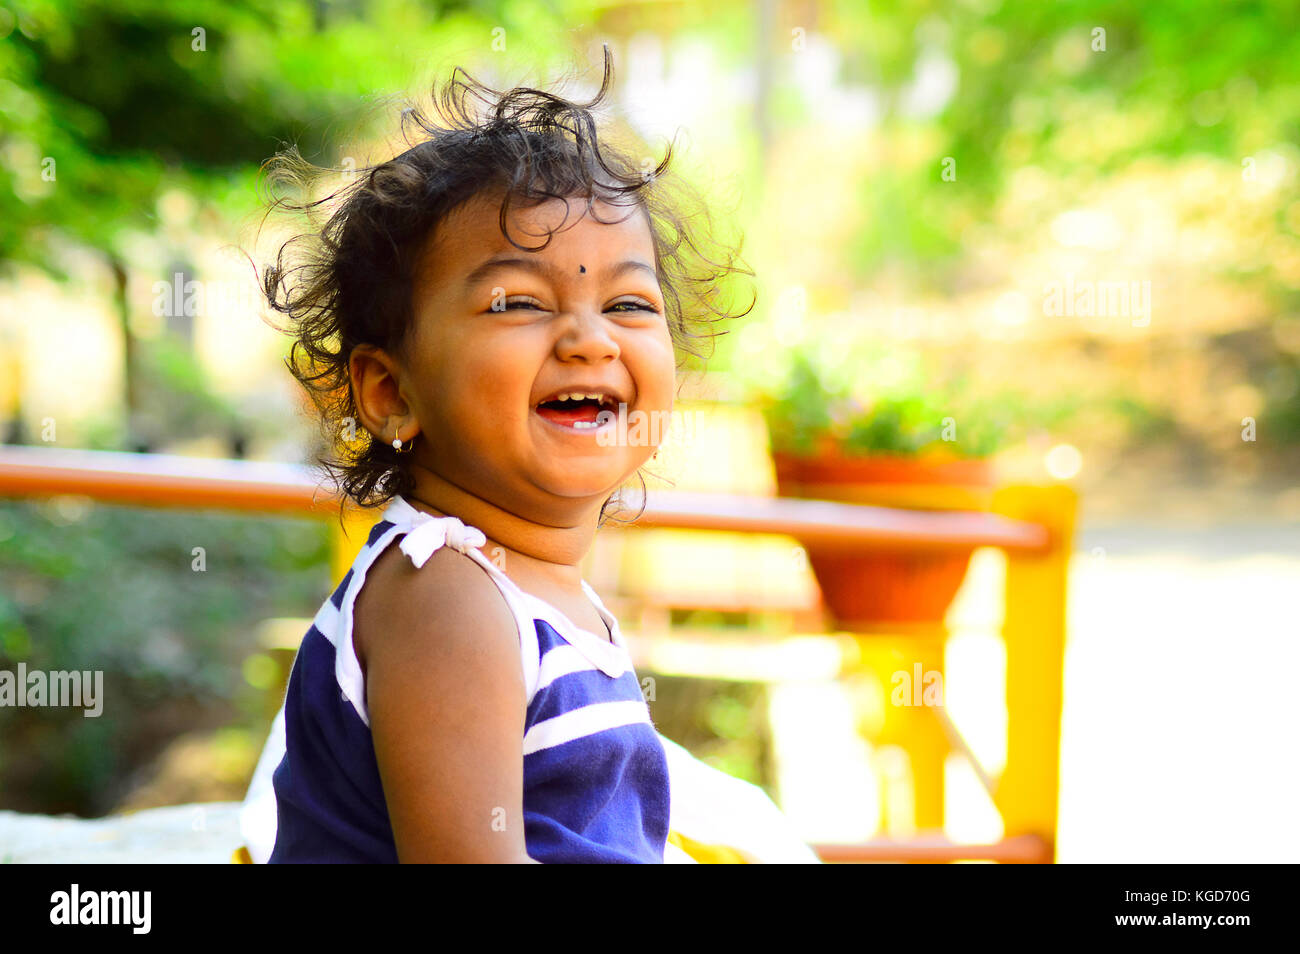 Cute baby laughing facing camera - Stock Image